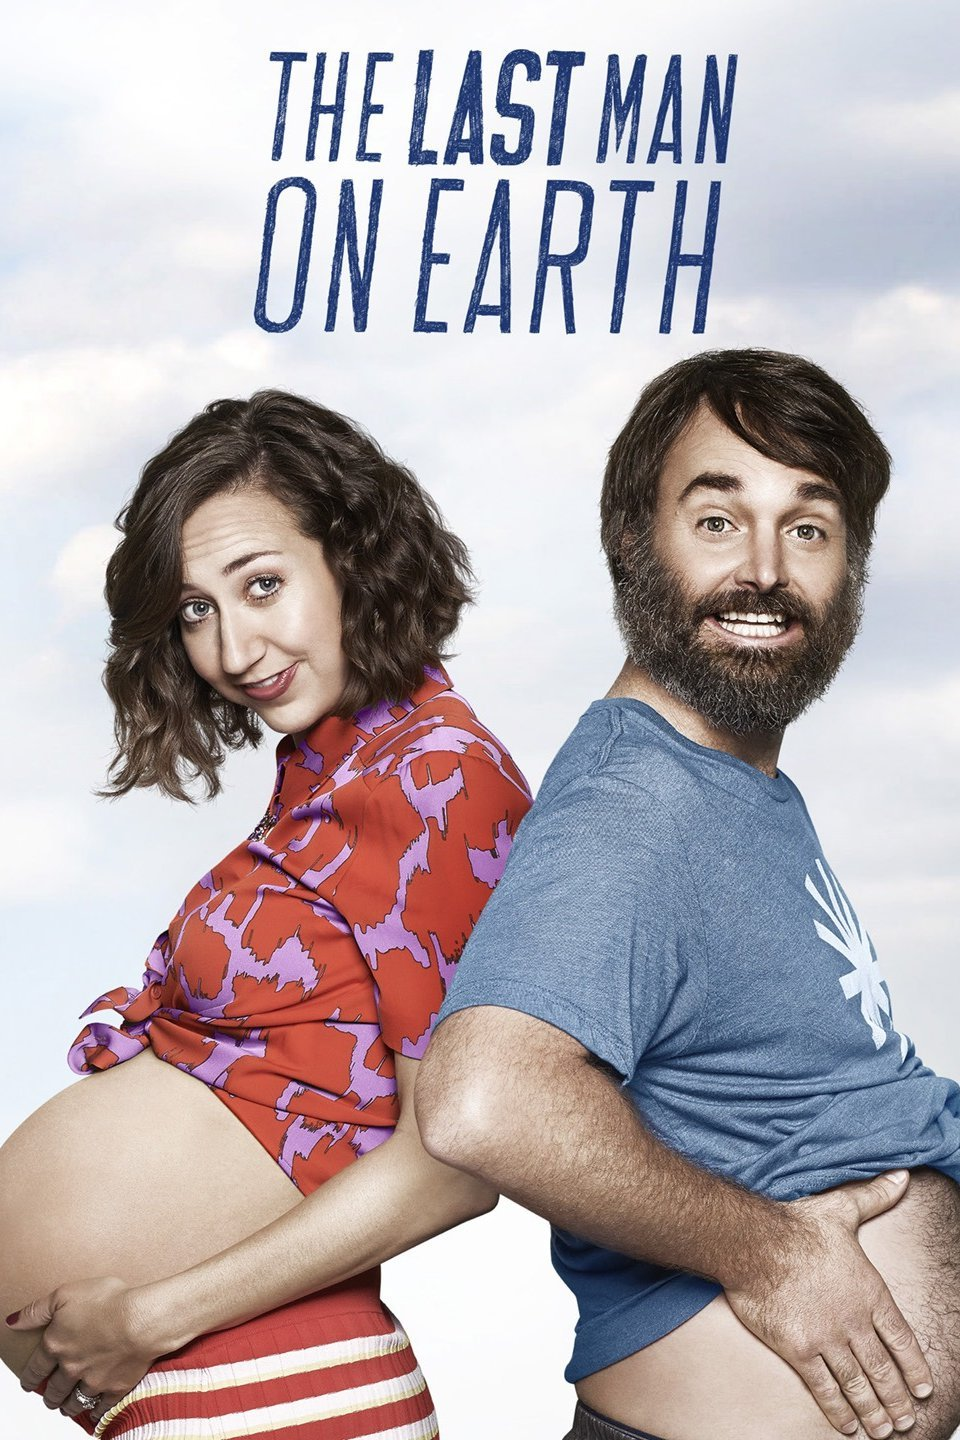 The poster of THE LAST MAN ON EARTH